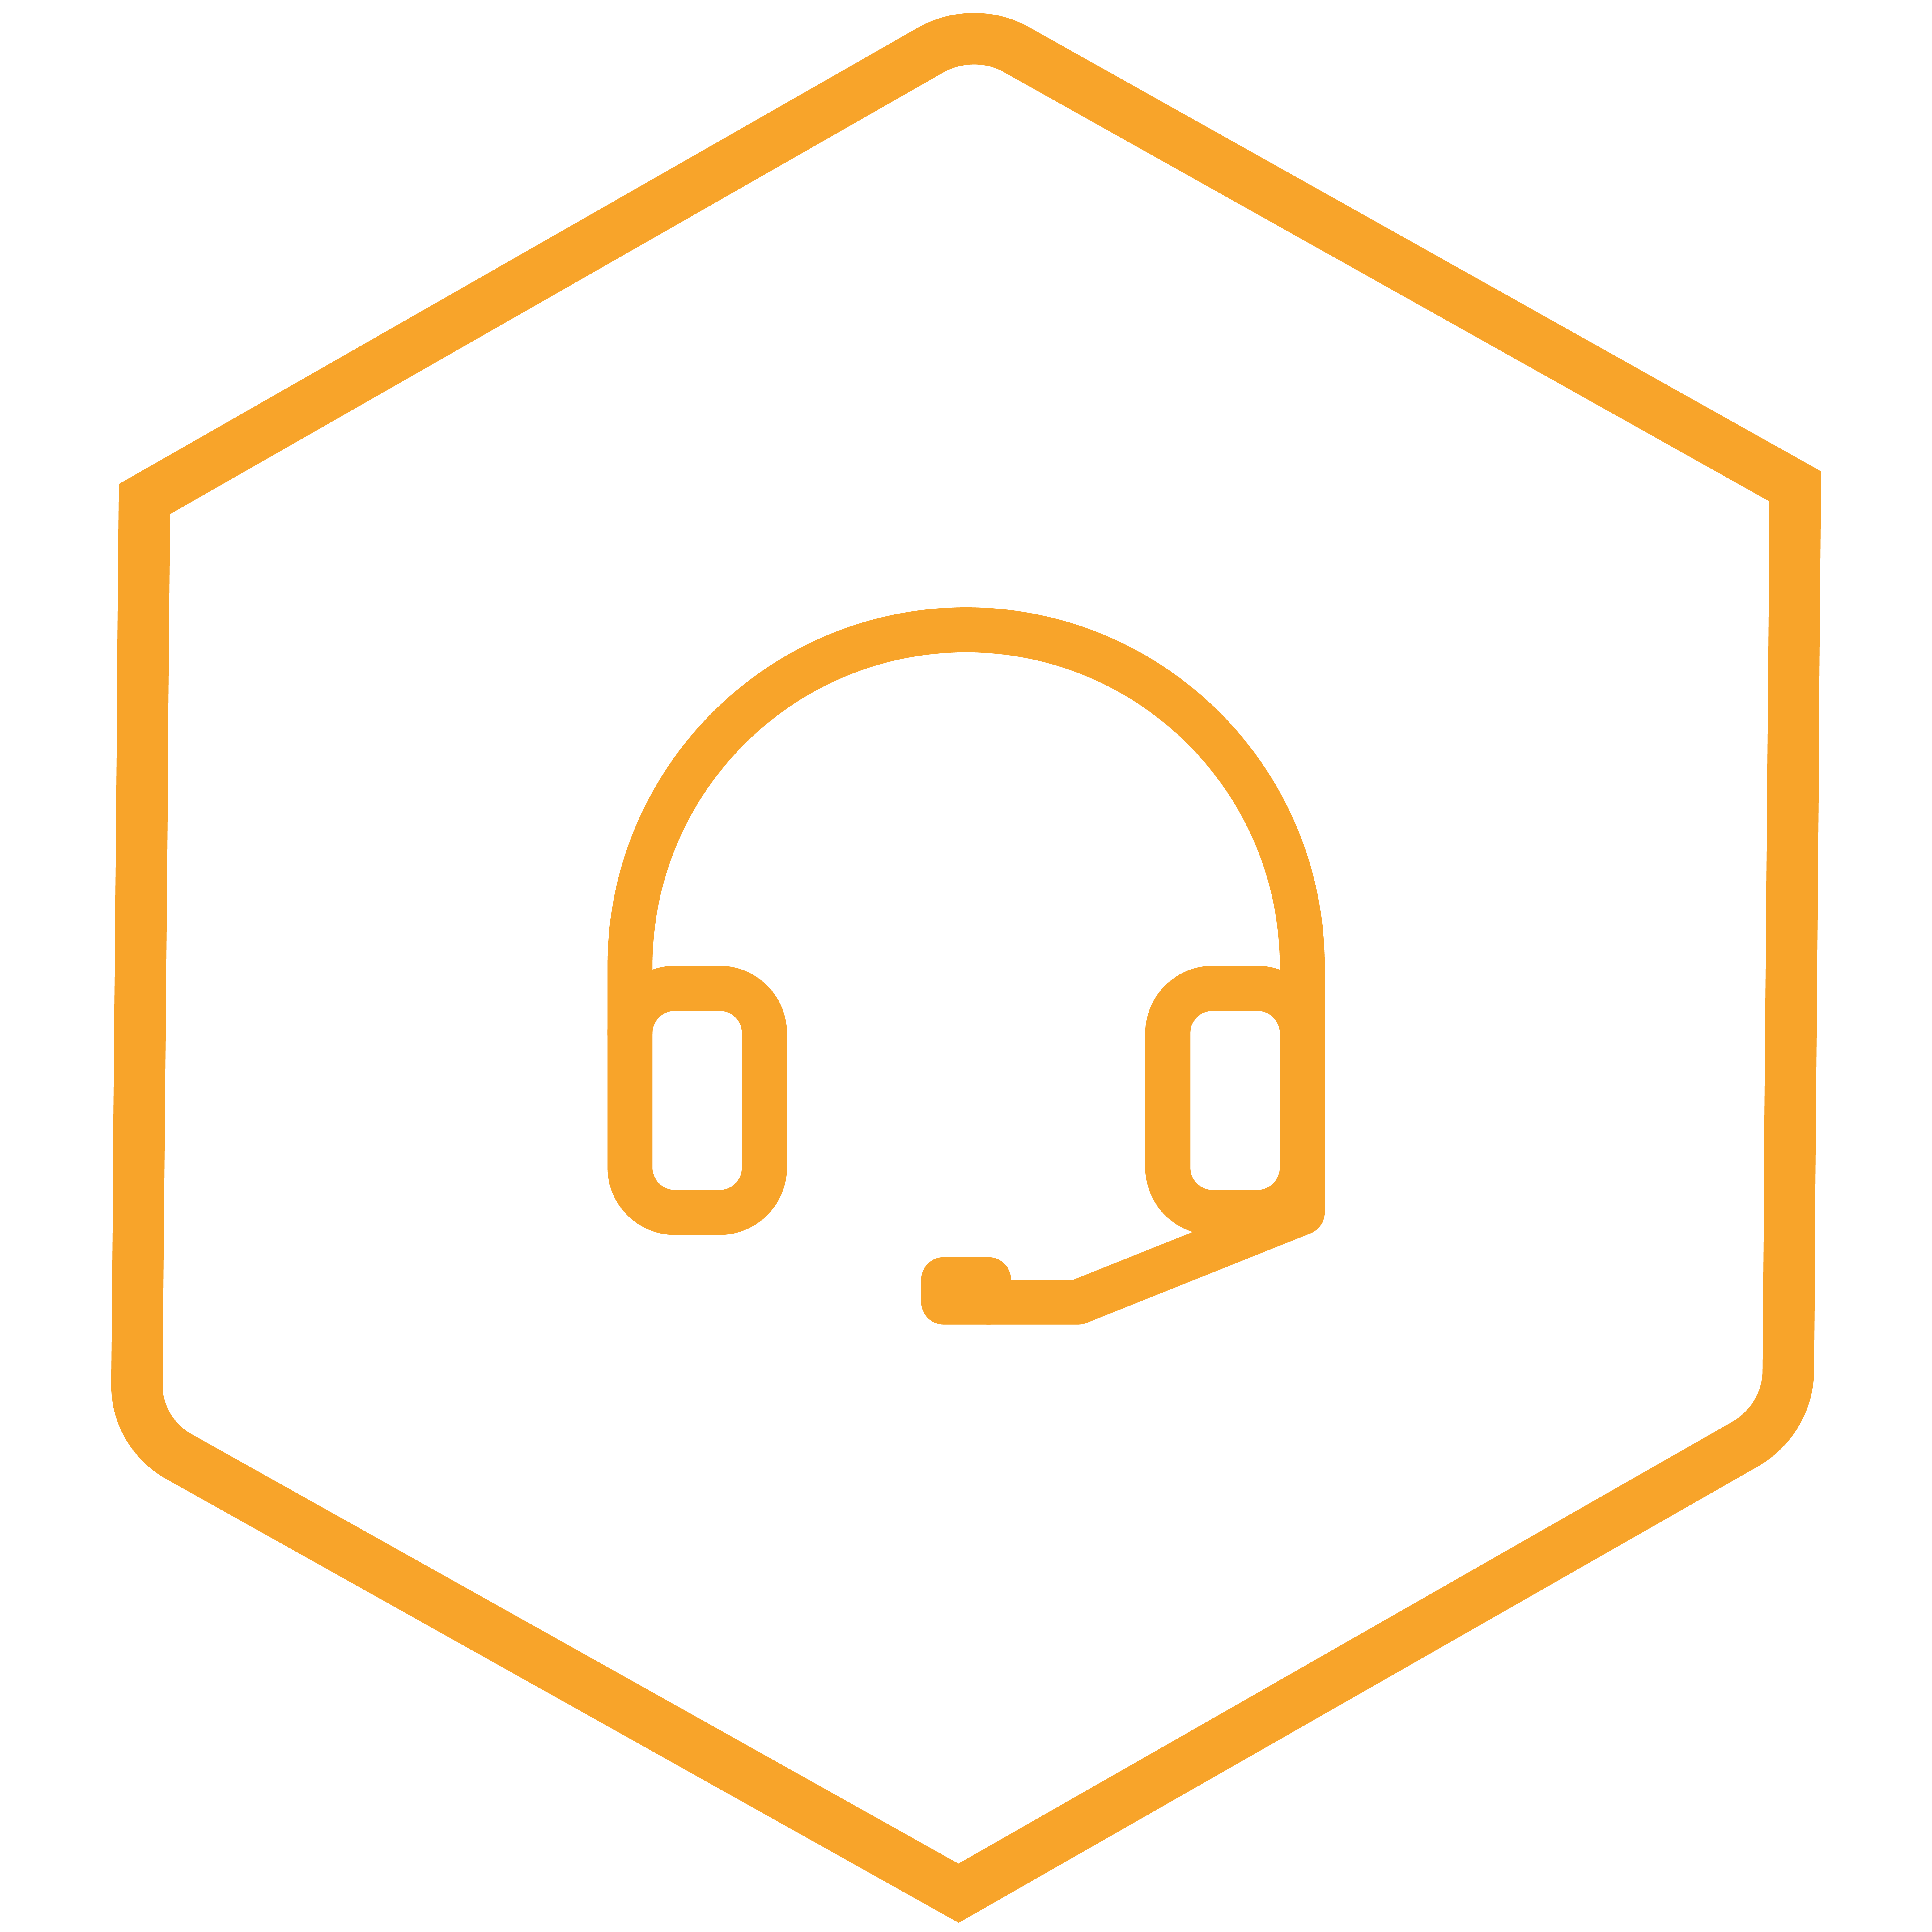 icons_hexagon4_headset-orange